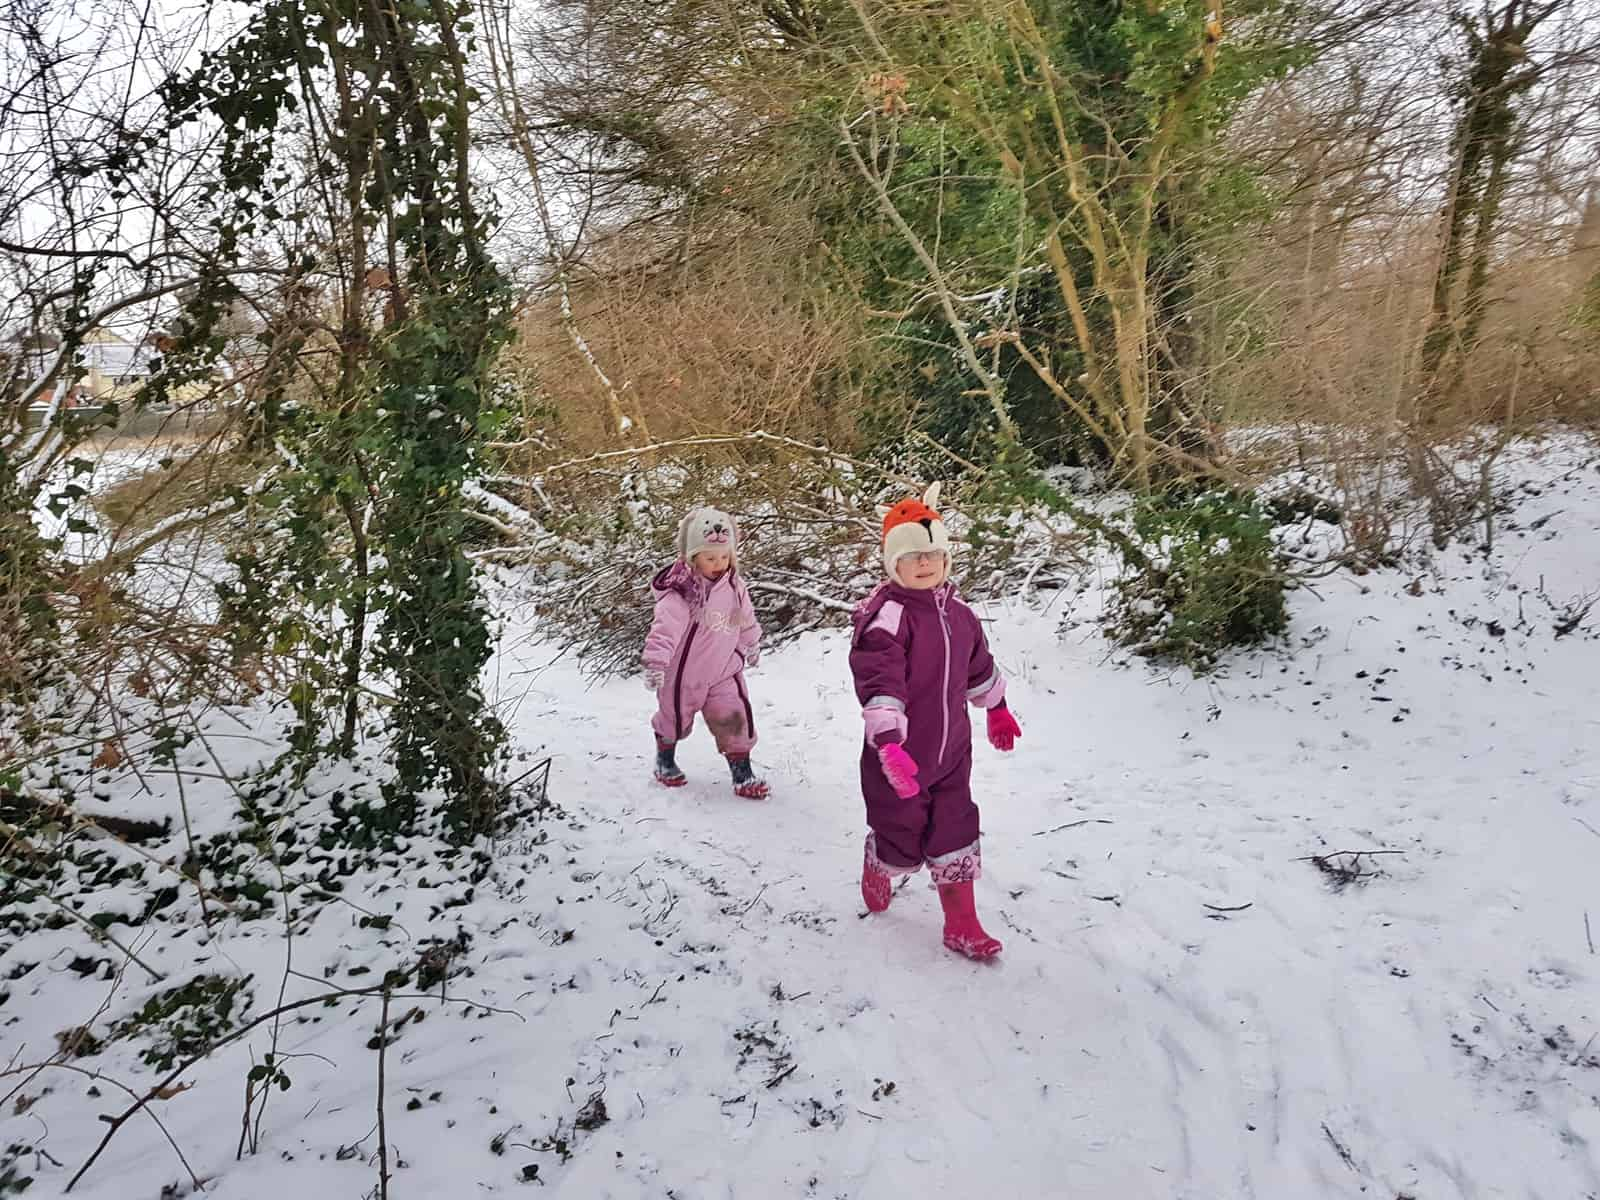 Two young girls walking along outside in the snow